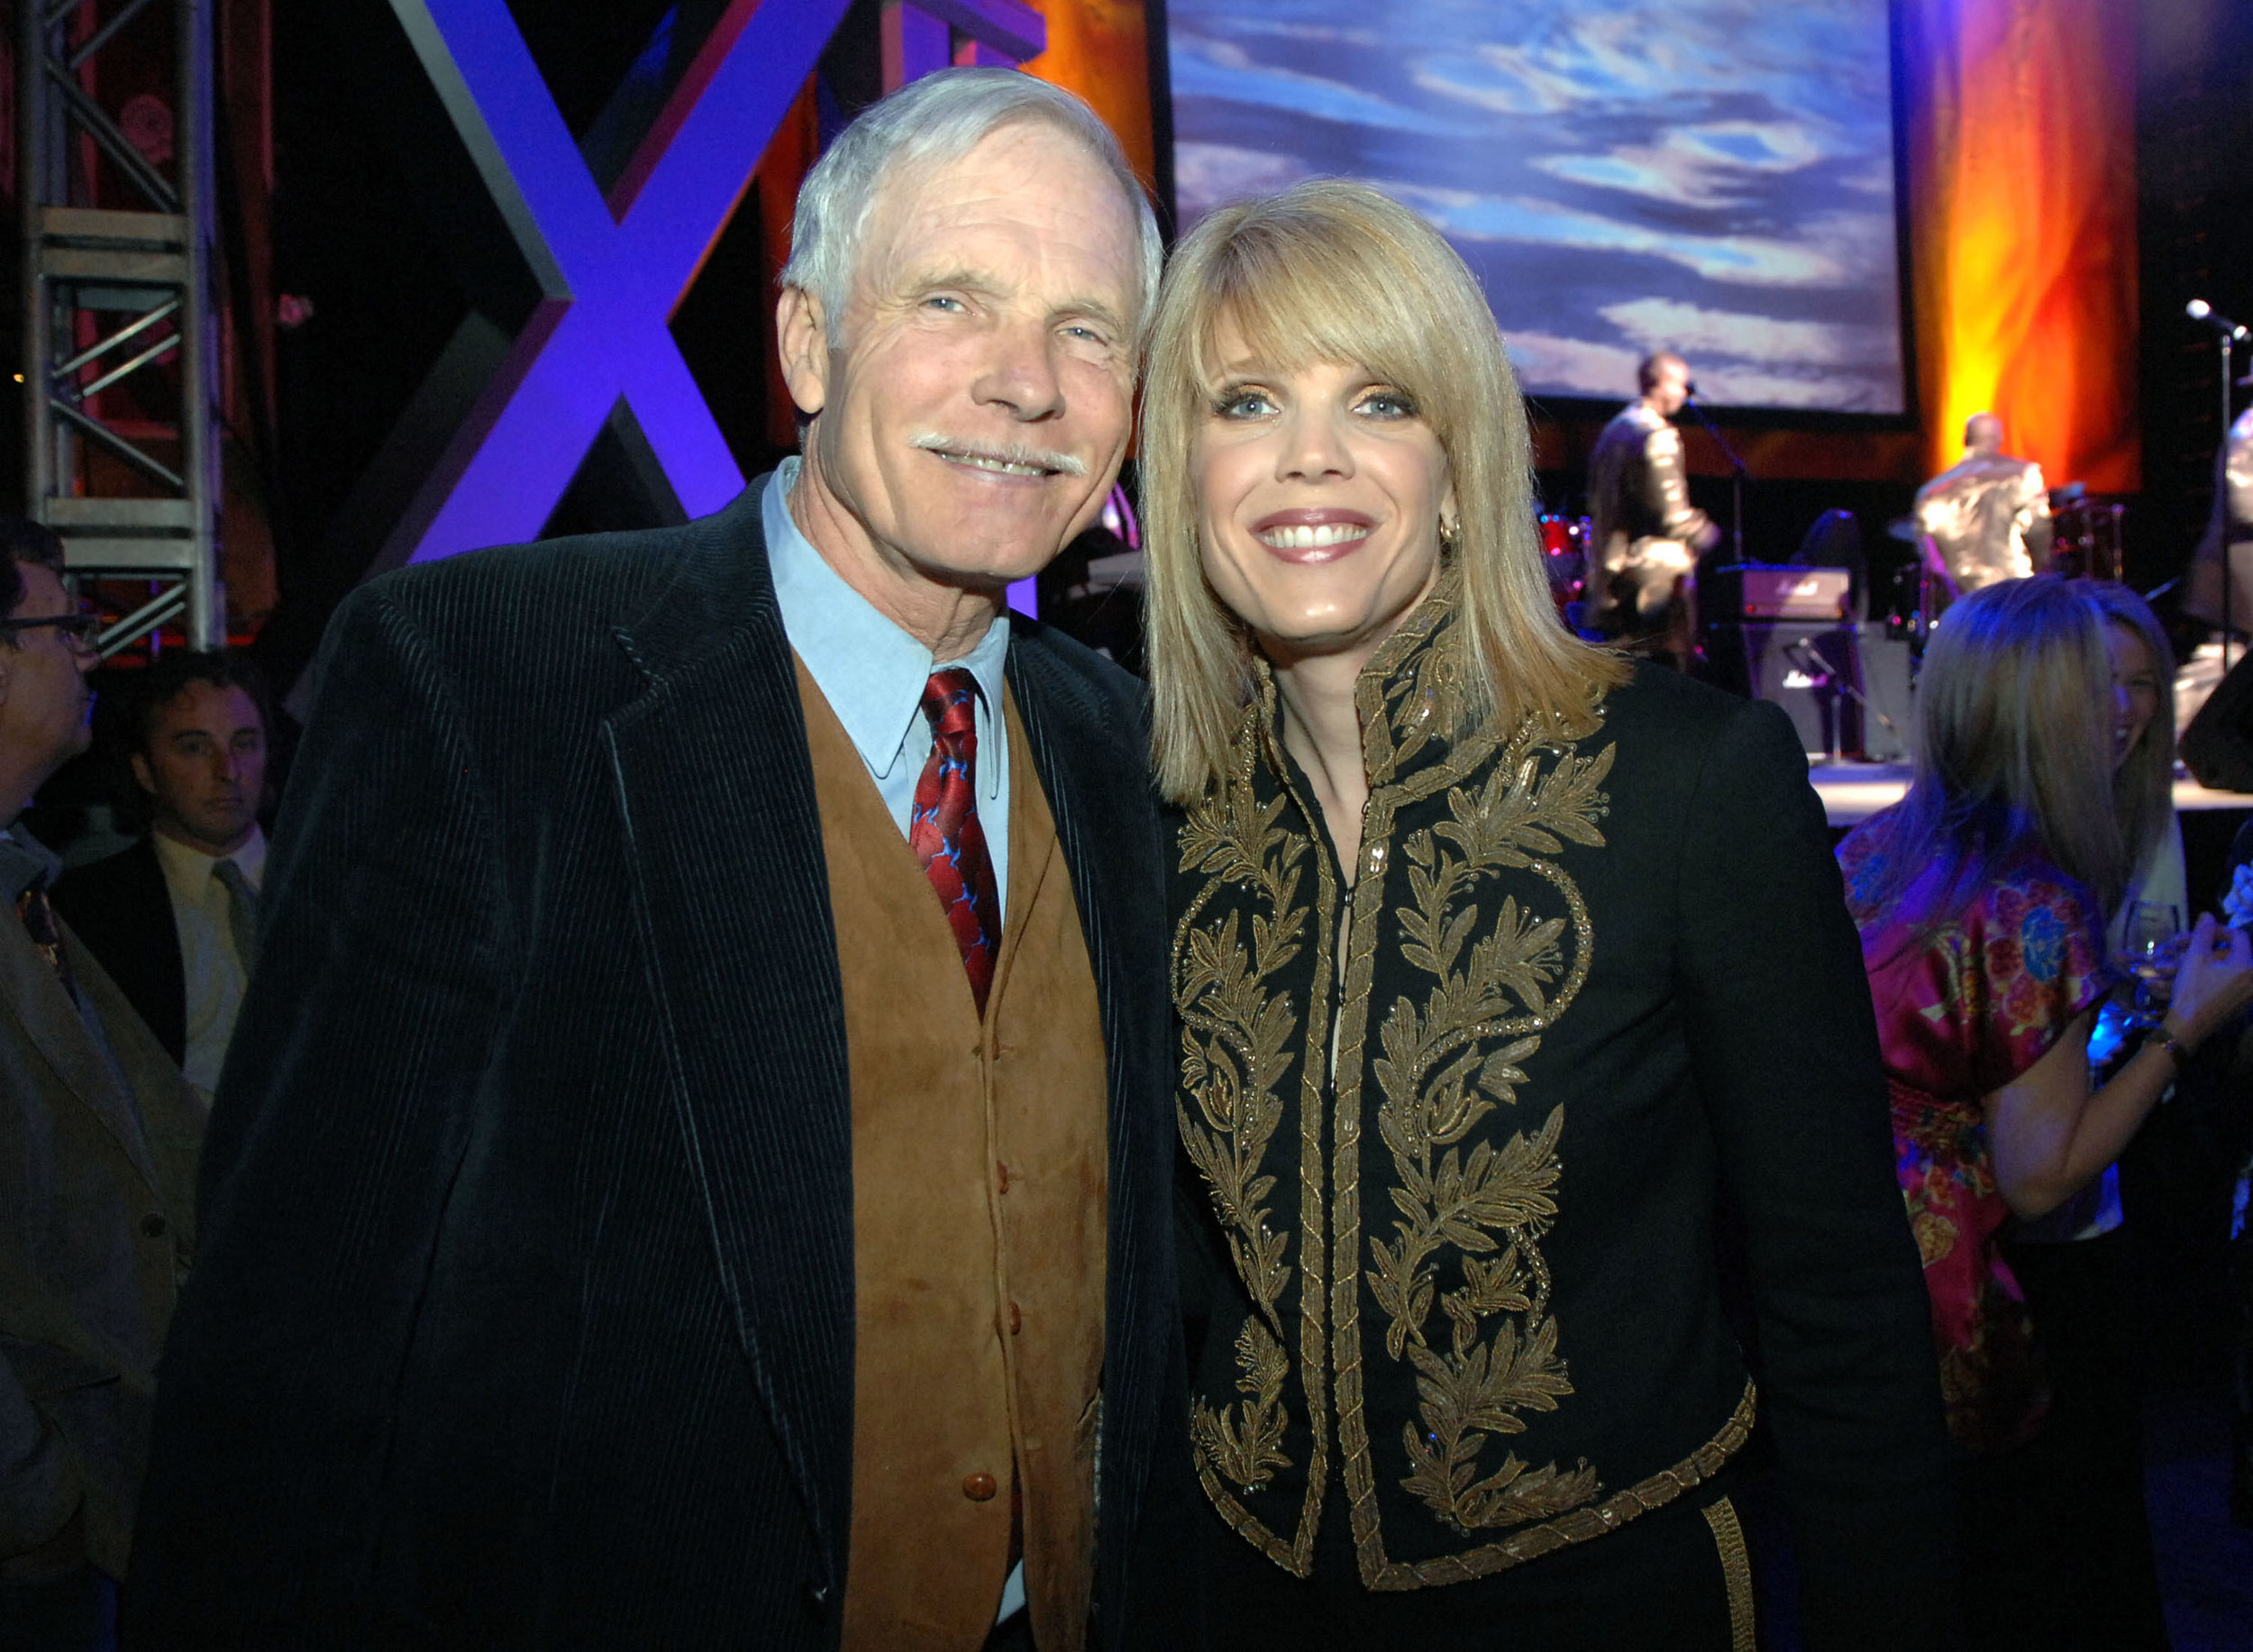 Laura Turner Seydel with her father Ted Turner.